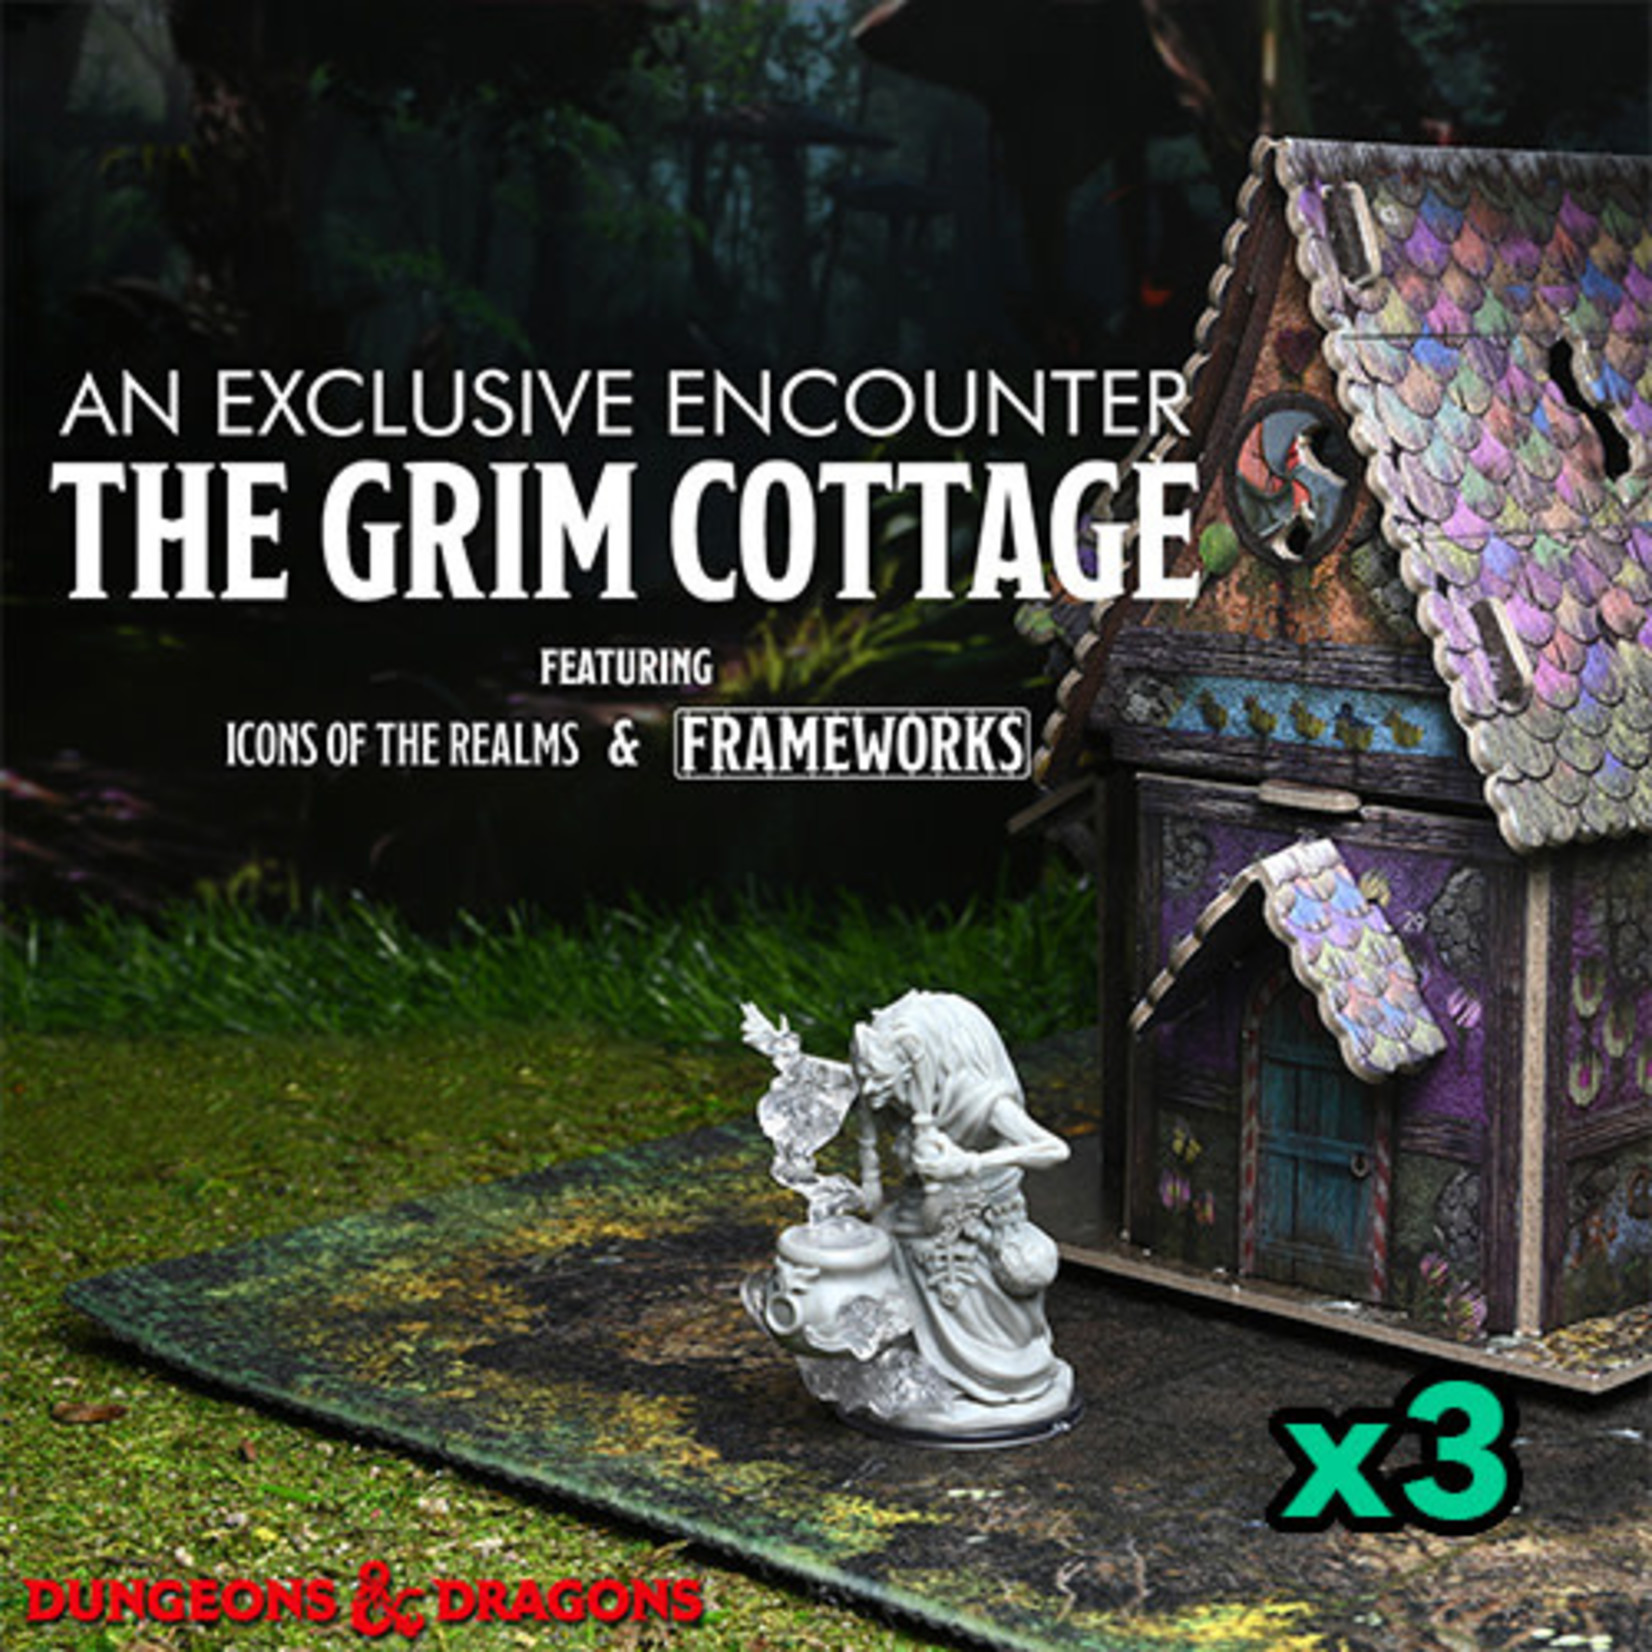 Fair Game Free RPG Day 2021 - The Grim Cottage (LG 2:30-5:30 PM)